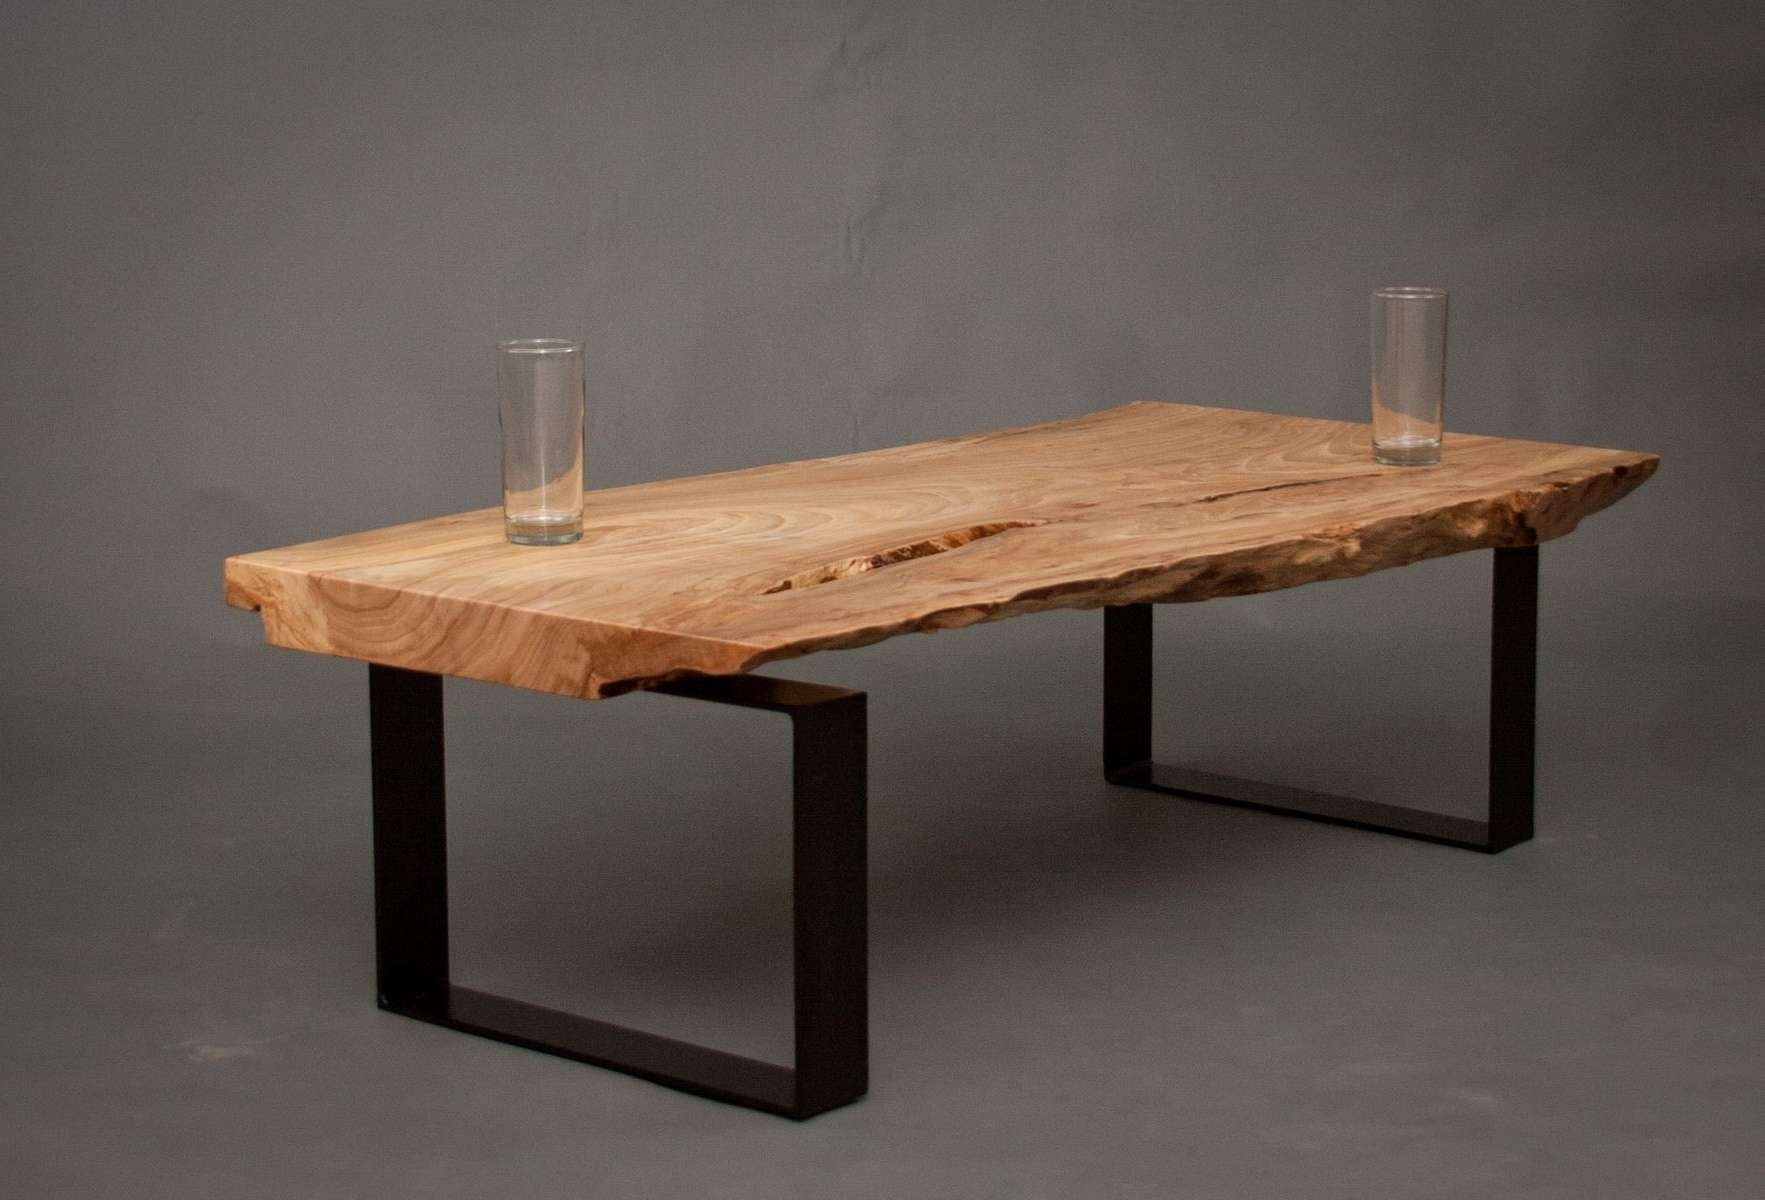 Newest Reclaimed Oak Coffee Tables Intended For Things To Know About Reclaimed Wood Coffee Tables – Chinese (View 15 of 20)